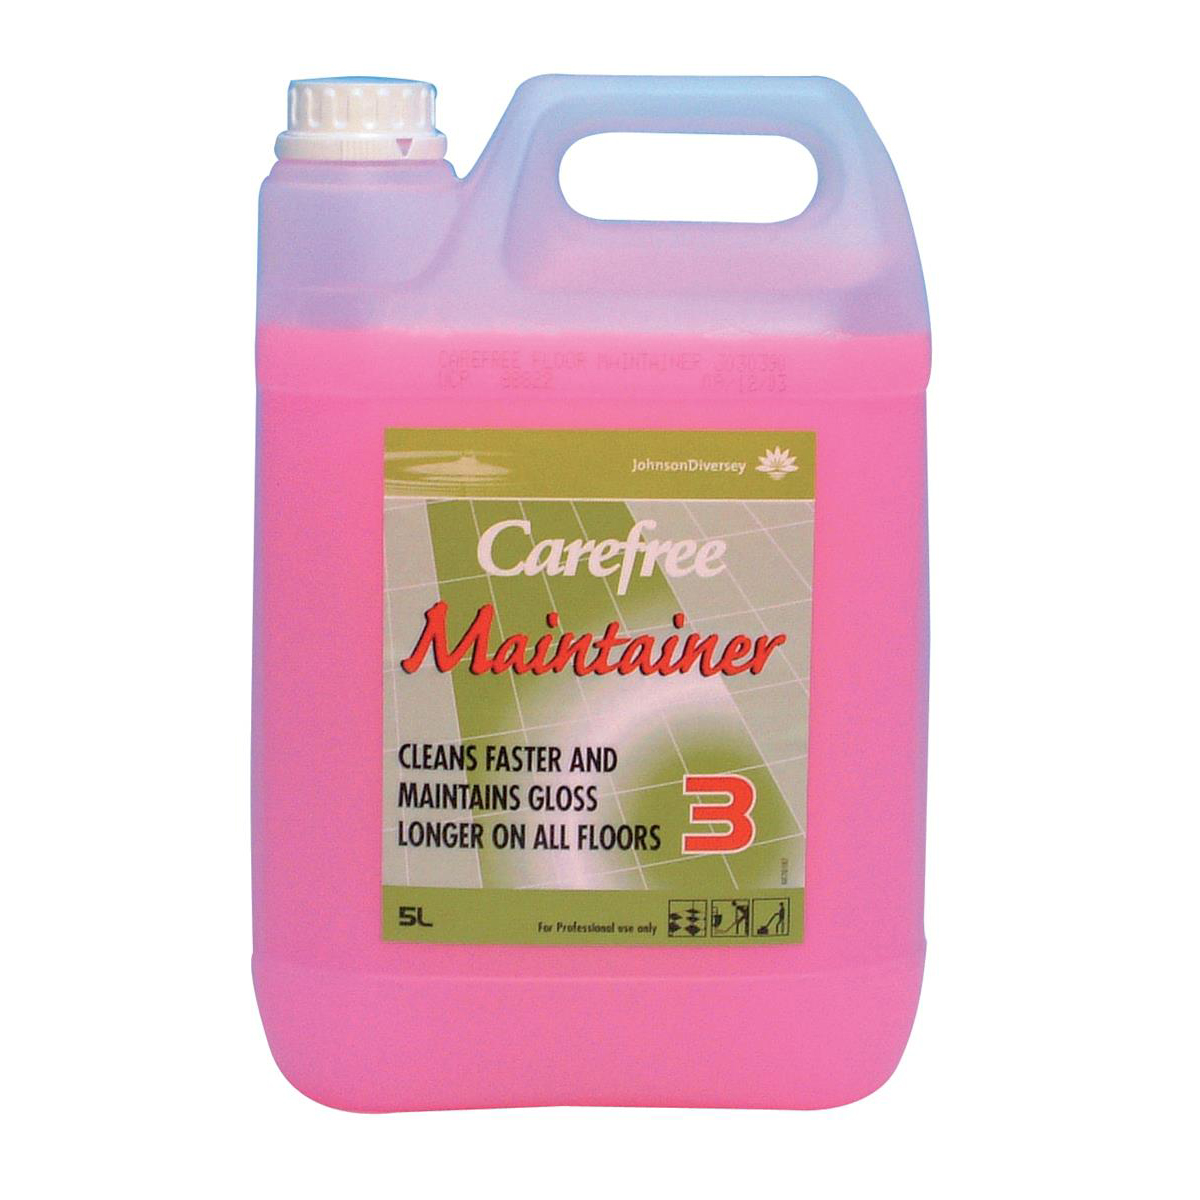 Floor Cleaning Johnson Diversey Carefree Floor Maintainer Step Three 5L Ref J030390